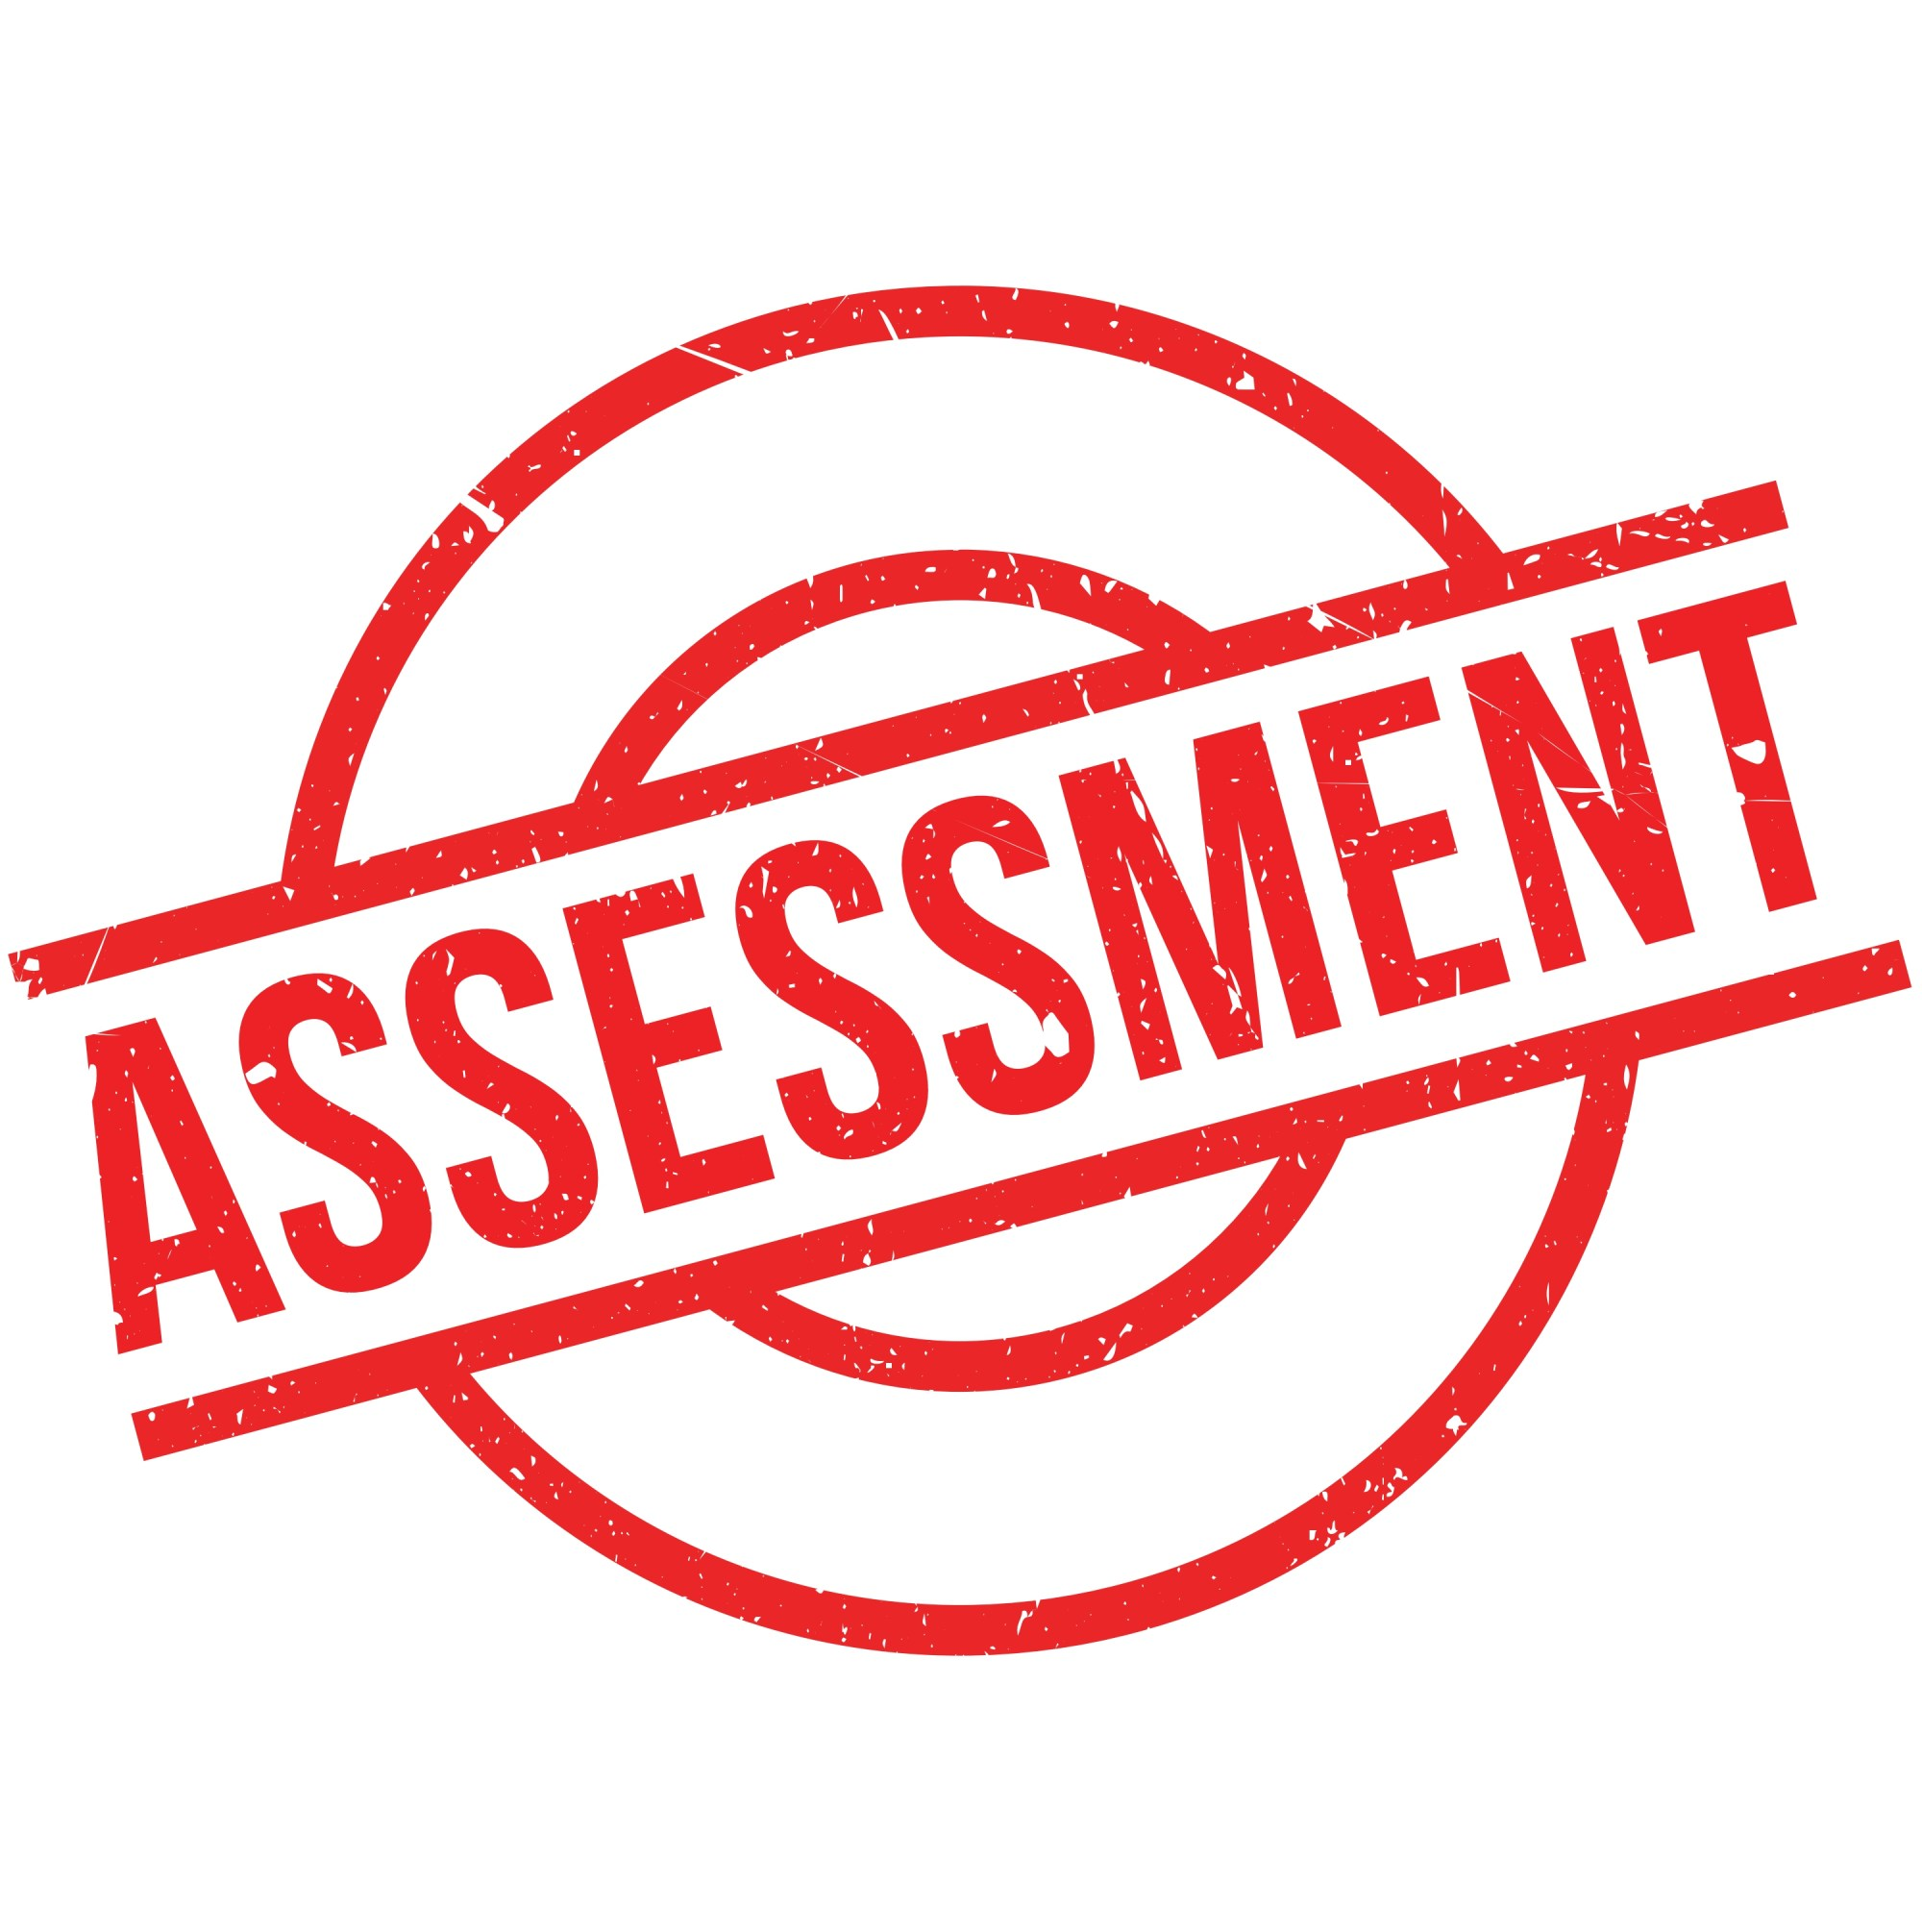 hight resolution of Free Literacy Assessments - Mrs. Judy Araujo